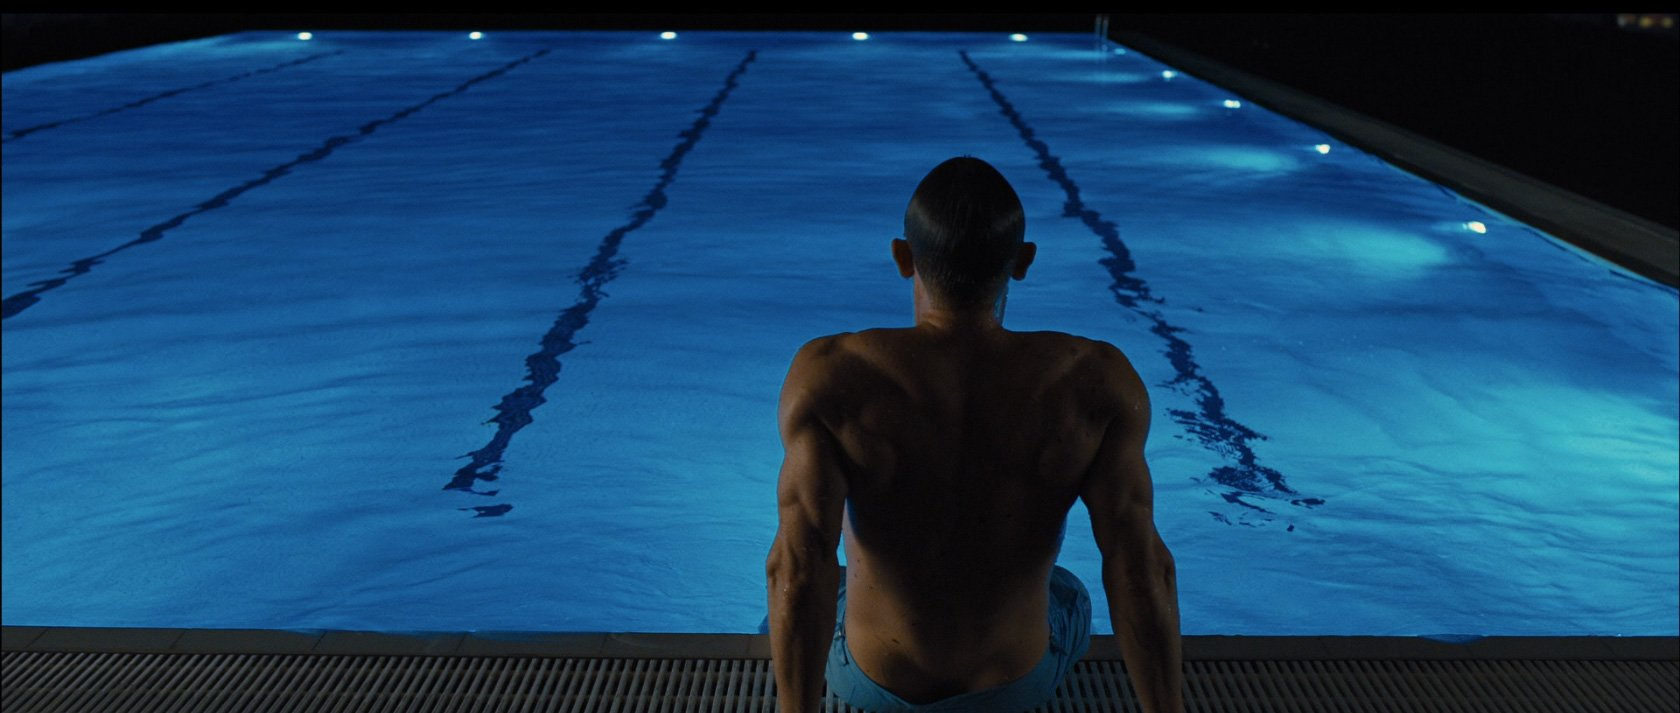 e6f450c0b8a57 Blue Swimming Trunks Again in Skyfall – The Suits of James Bond